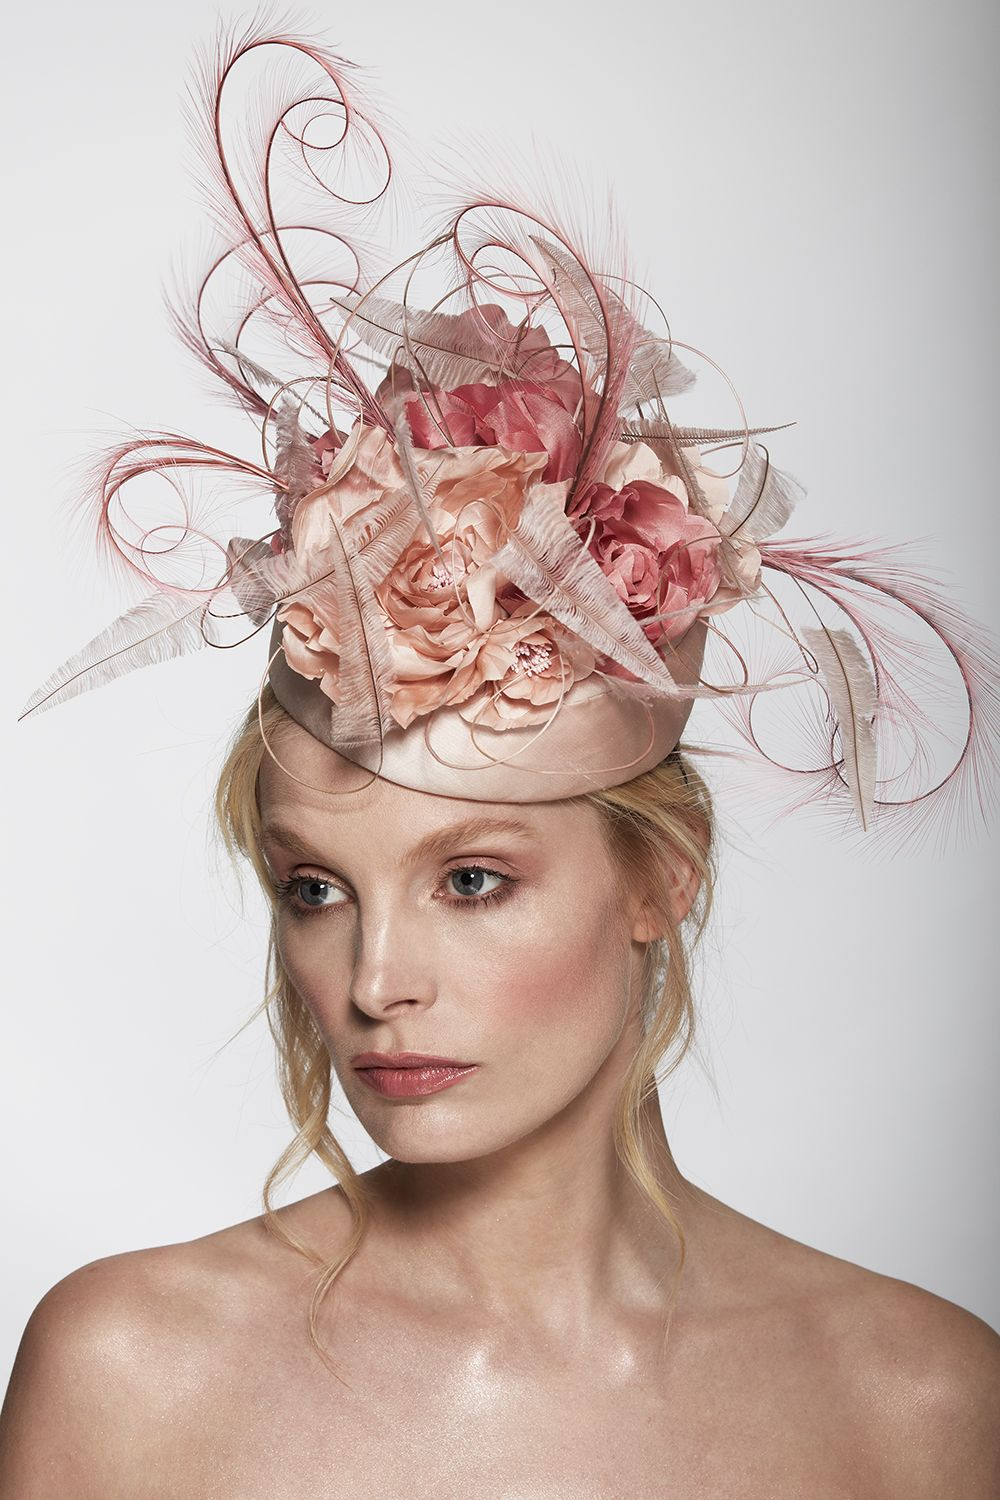 A Pale Pink Wedding Hat Dupion Silk Pillbox With Hand Tooled Flowers In Light And Dusty Pinks Sculptured Ostrich Pheasant Feathers